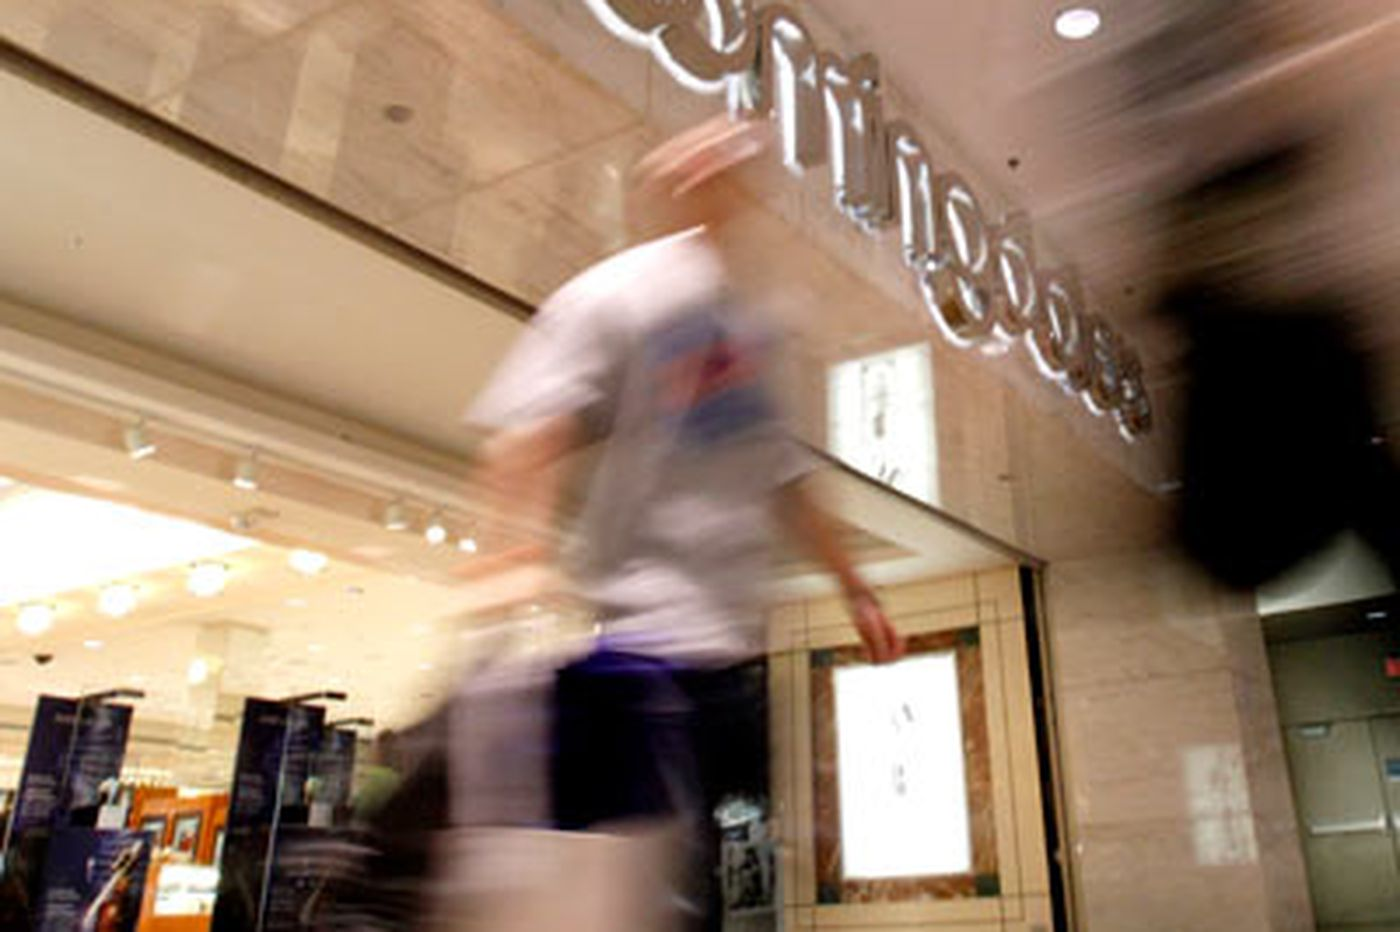 PhillyDeals: Is a high-end retailer in Gallery's near future?